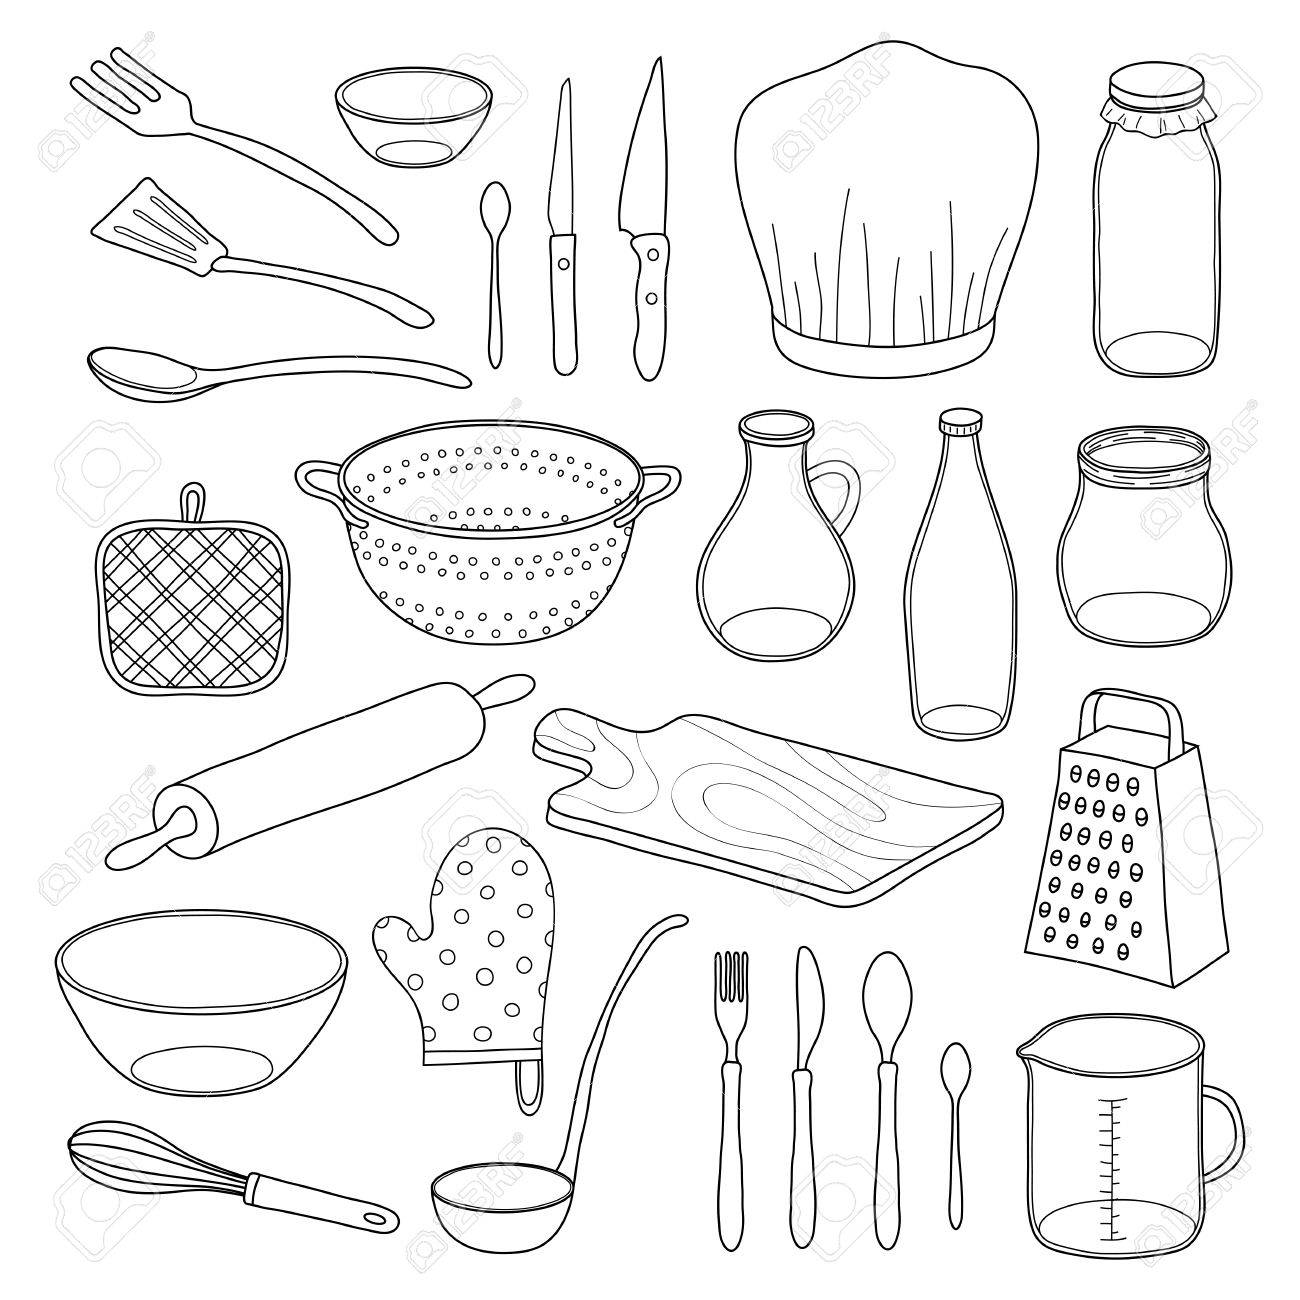 Utensils Drawing at GetDrawings.com | Free for personal use Utensils ...